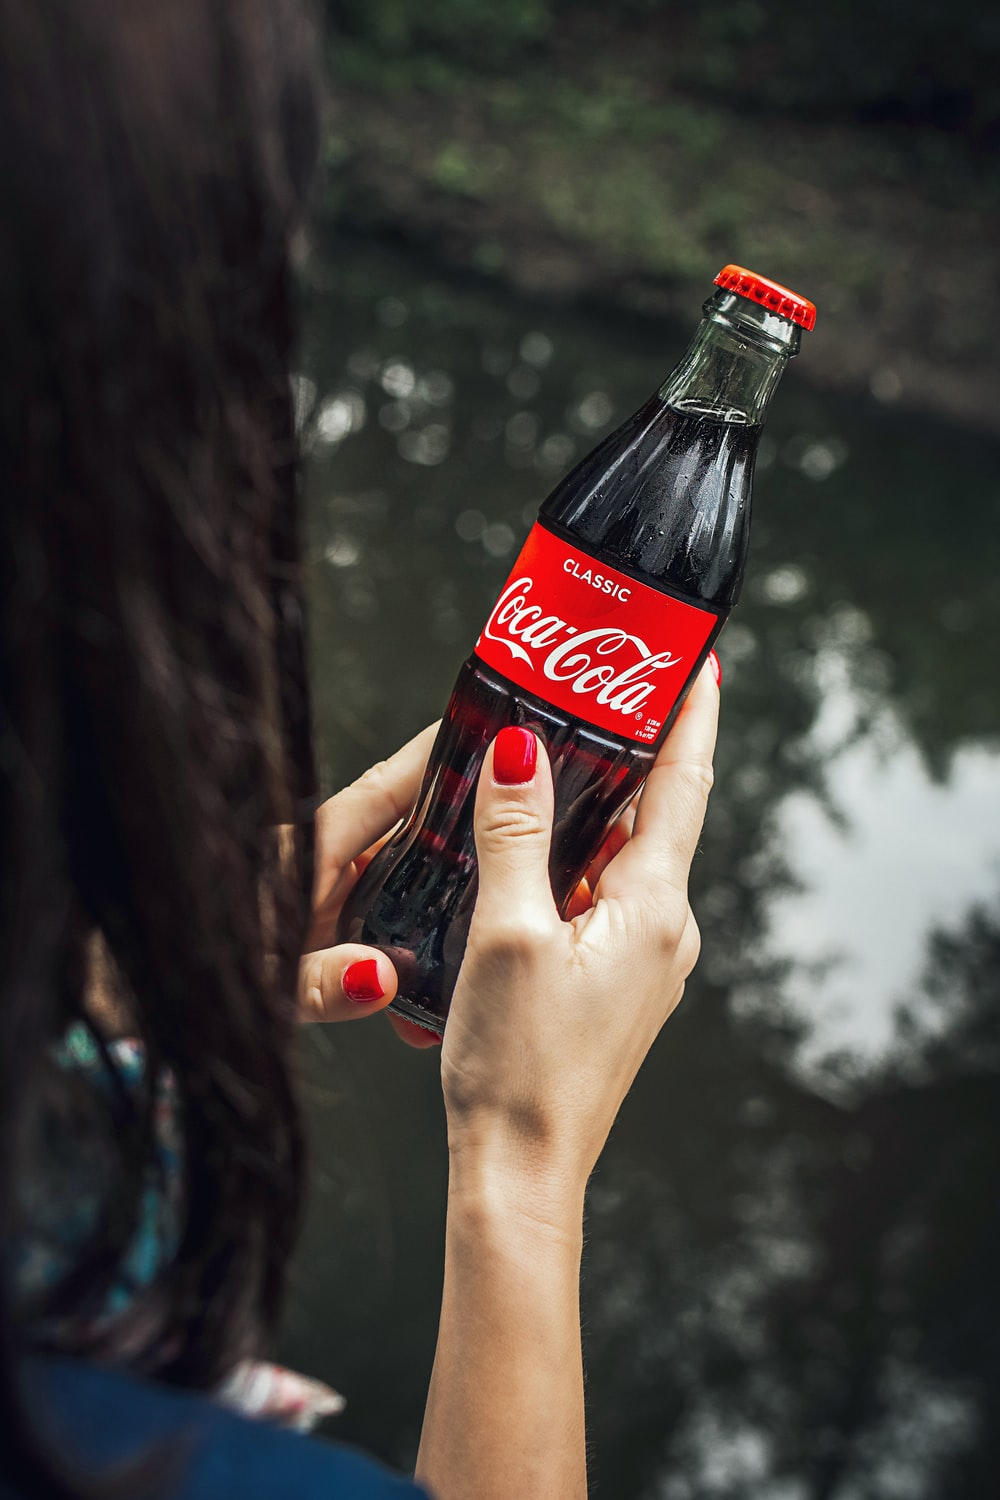 women holding a red Coca-Cola bottle during daytime